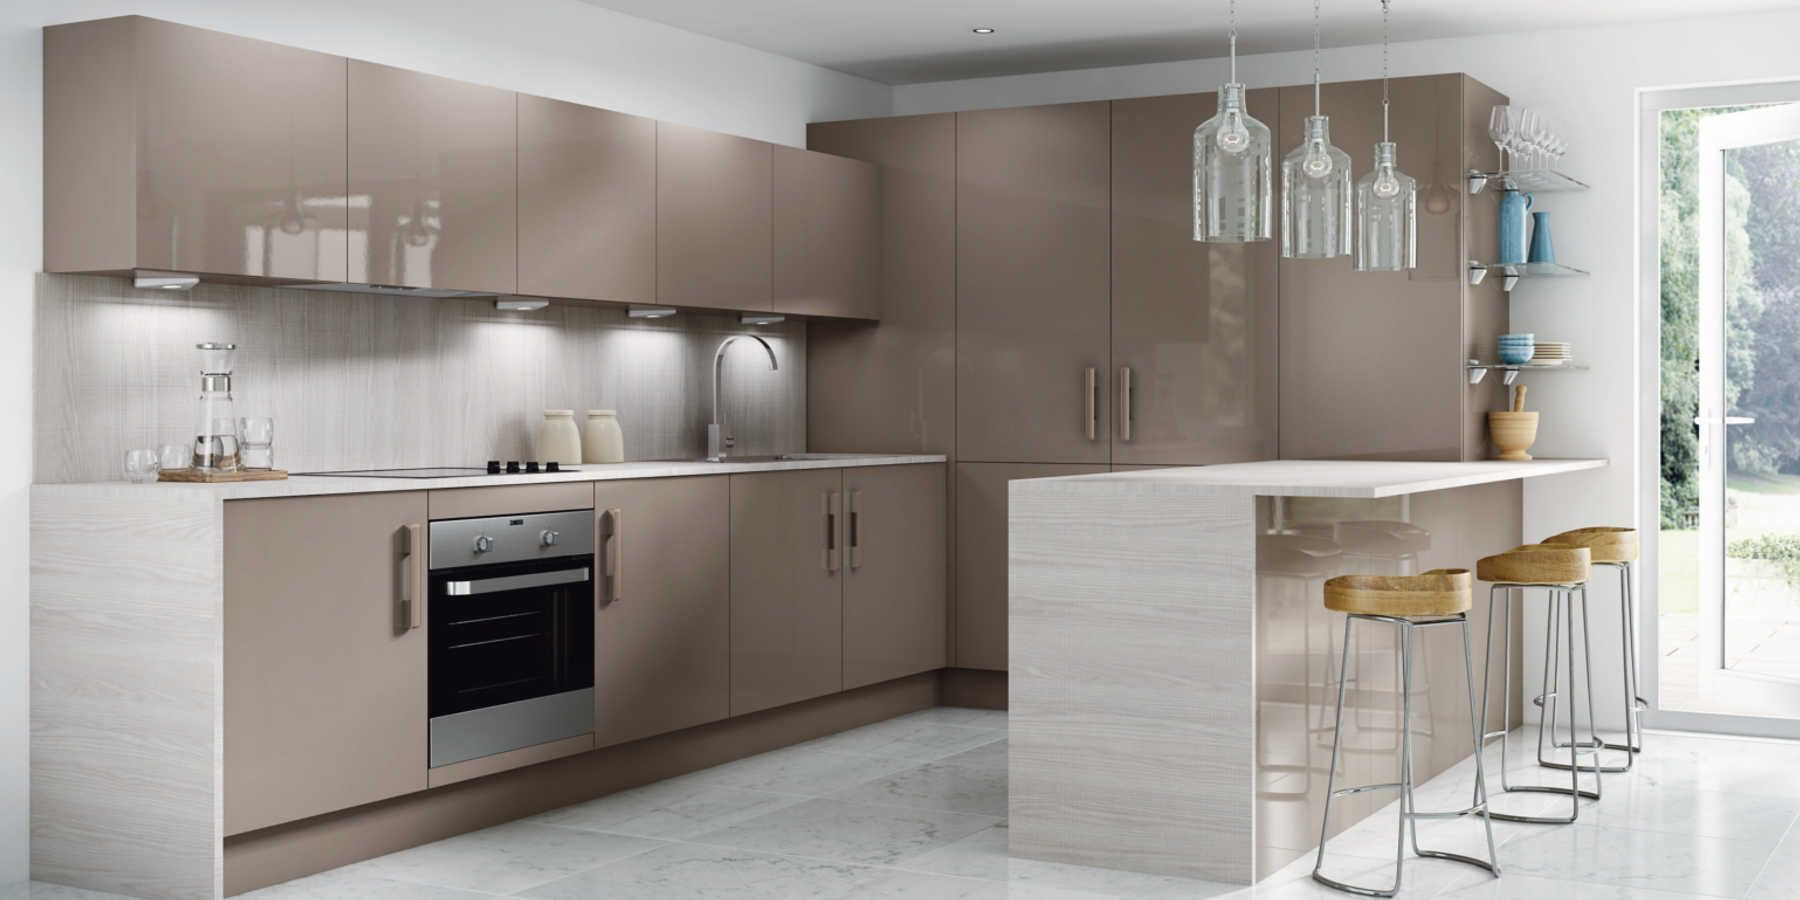 db47ef72fd Image result for woodbury cashmere kitchen | Flat in 2019 | Symphony ...